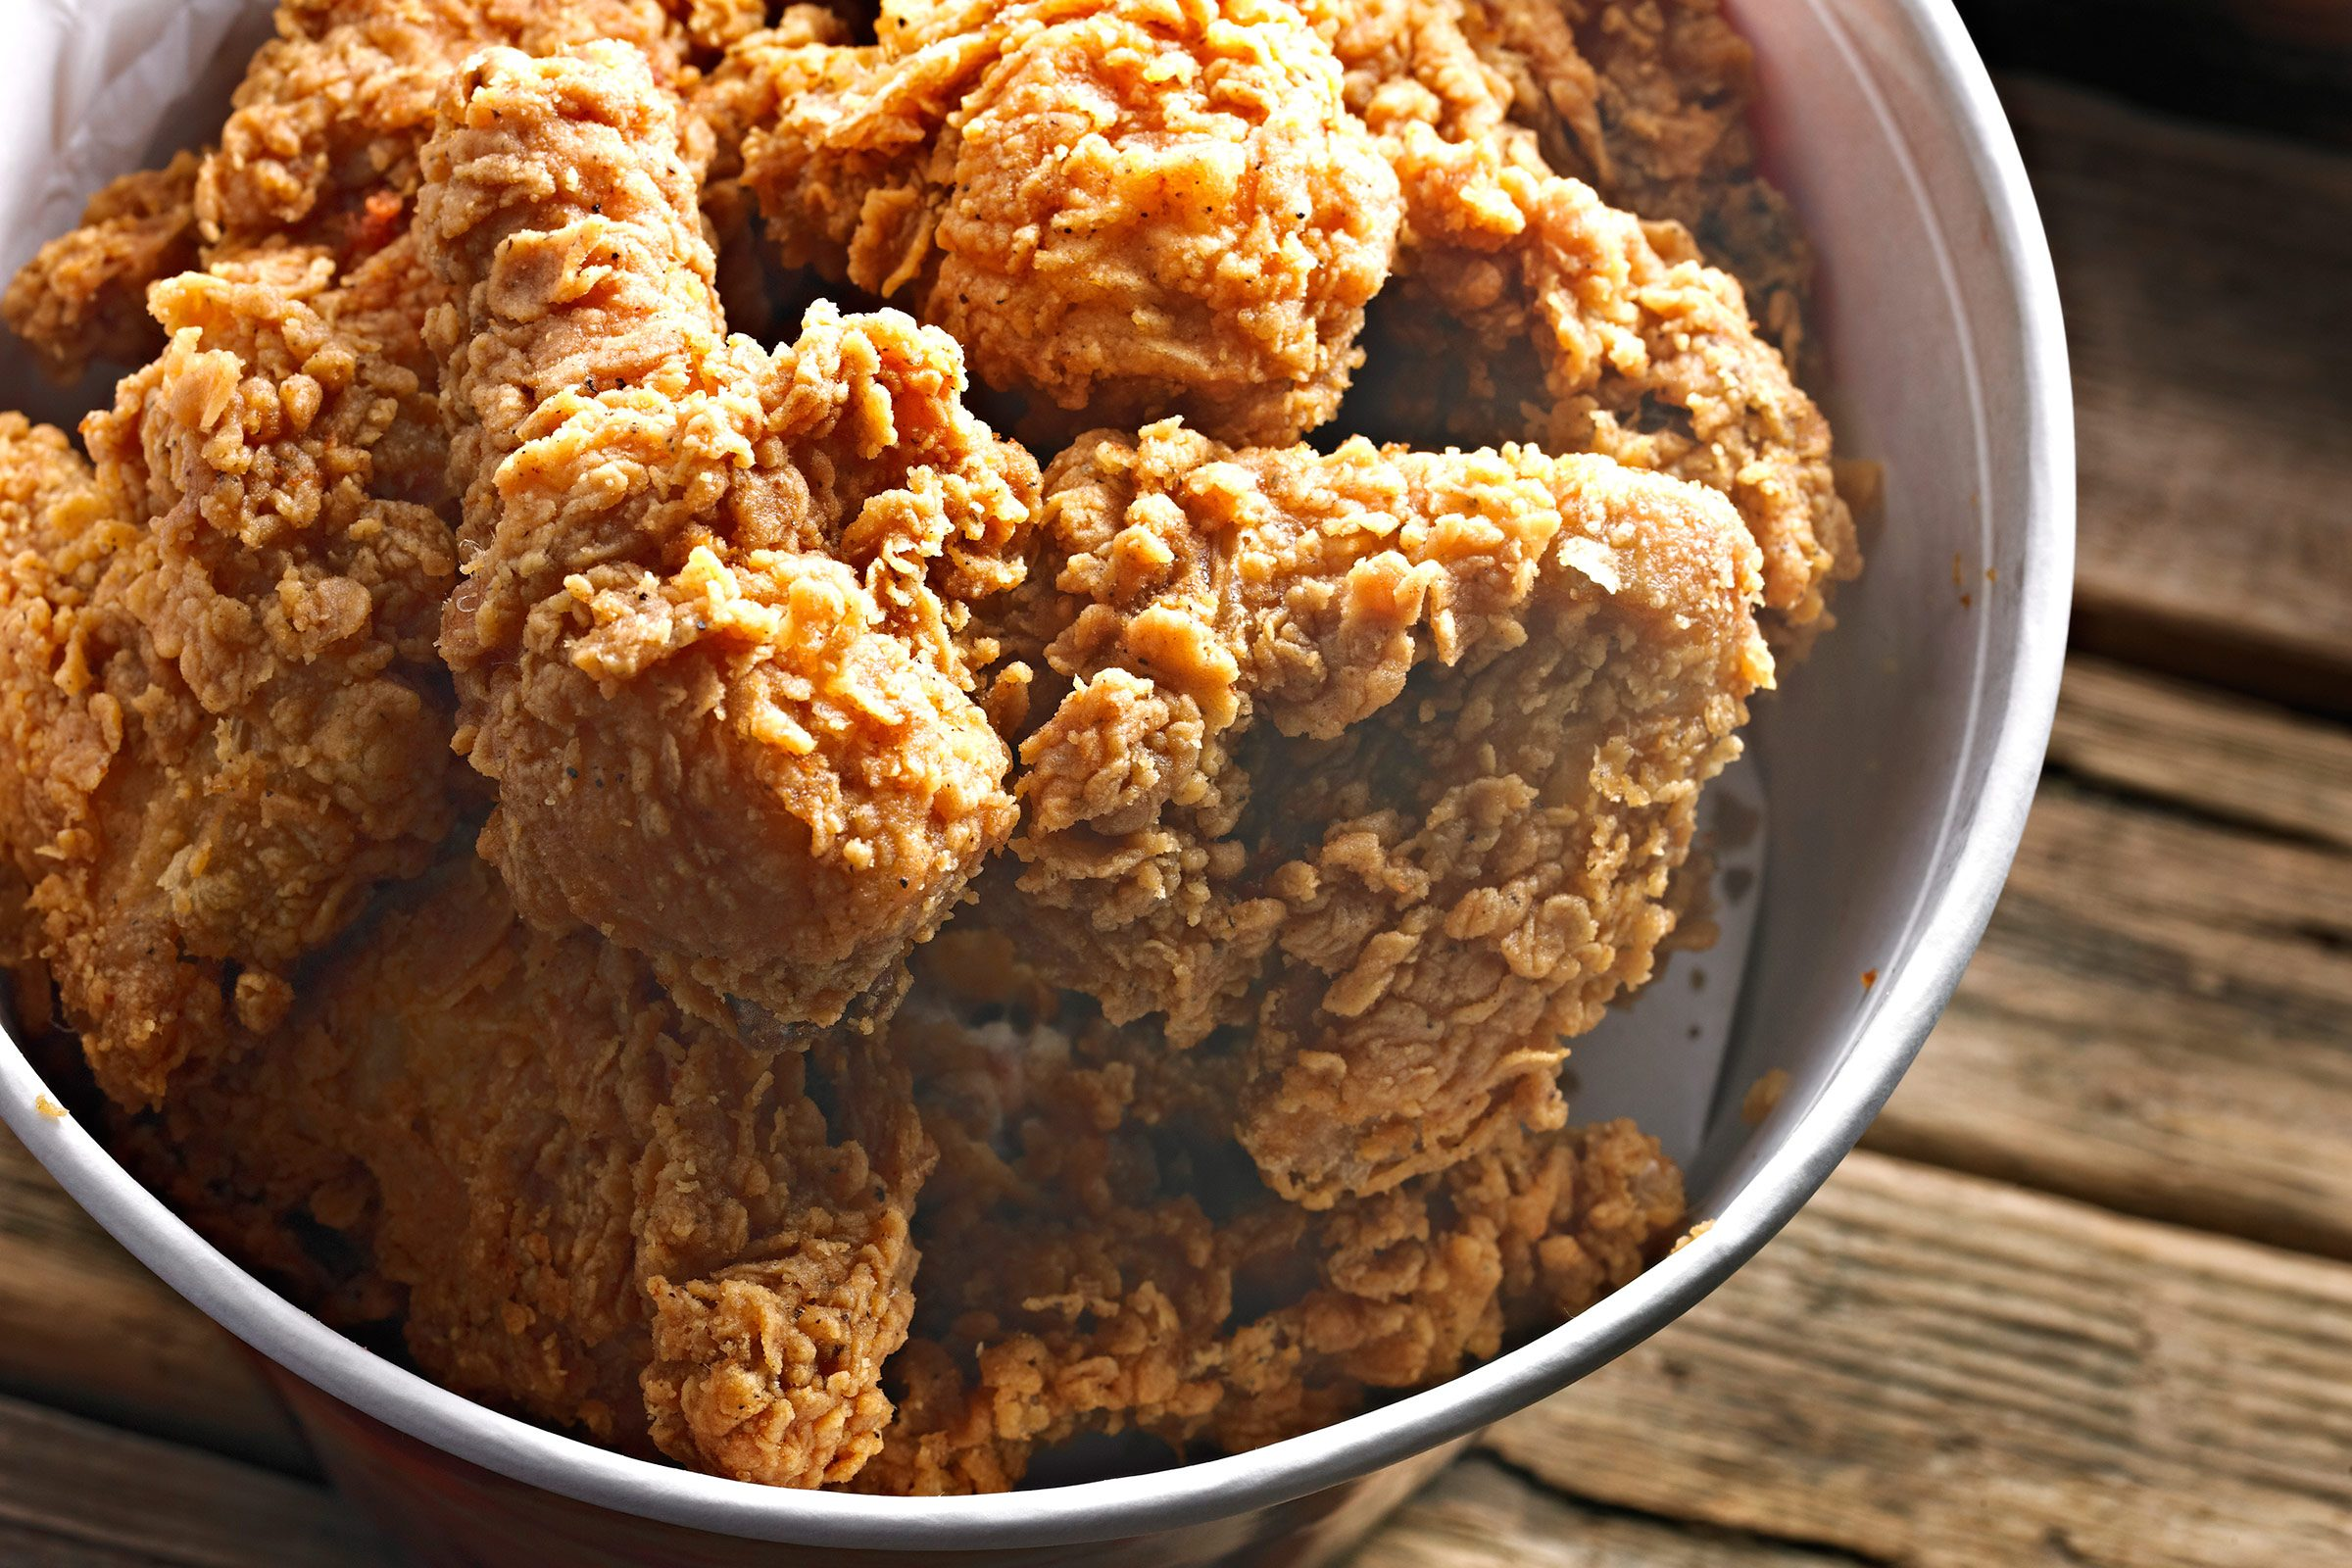 Please don't ask what ingredients are in our fried chicken coating or in our special sauce.